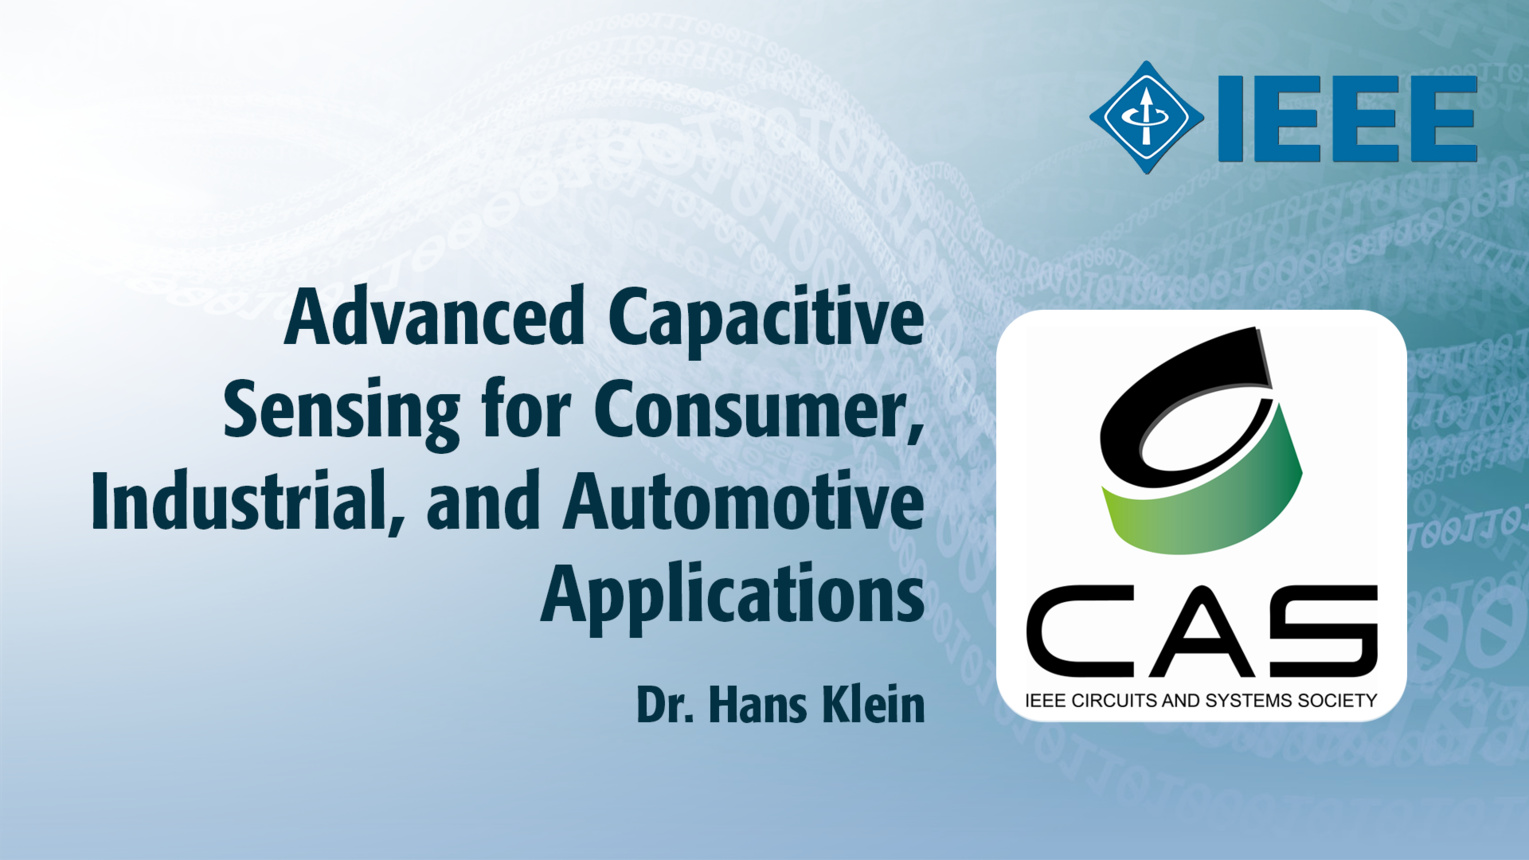 Advanced Capacitive Sensing for Consumer, Industrial, and Automotive Applications - Lecture by Dr. Hans Klein